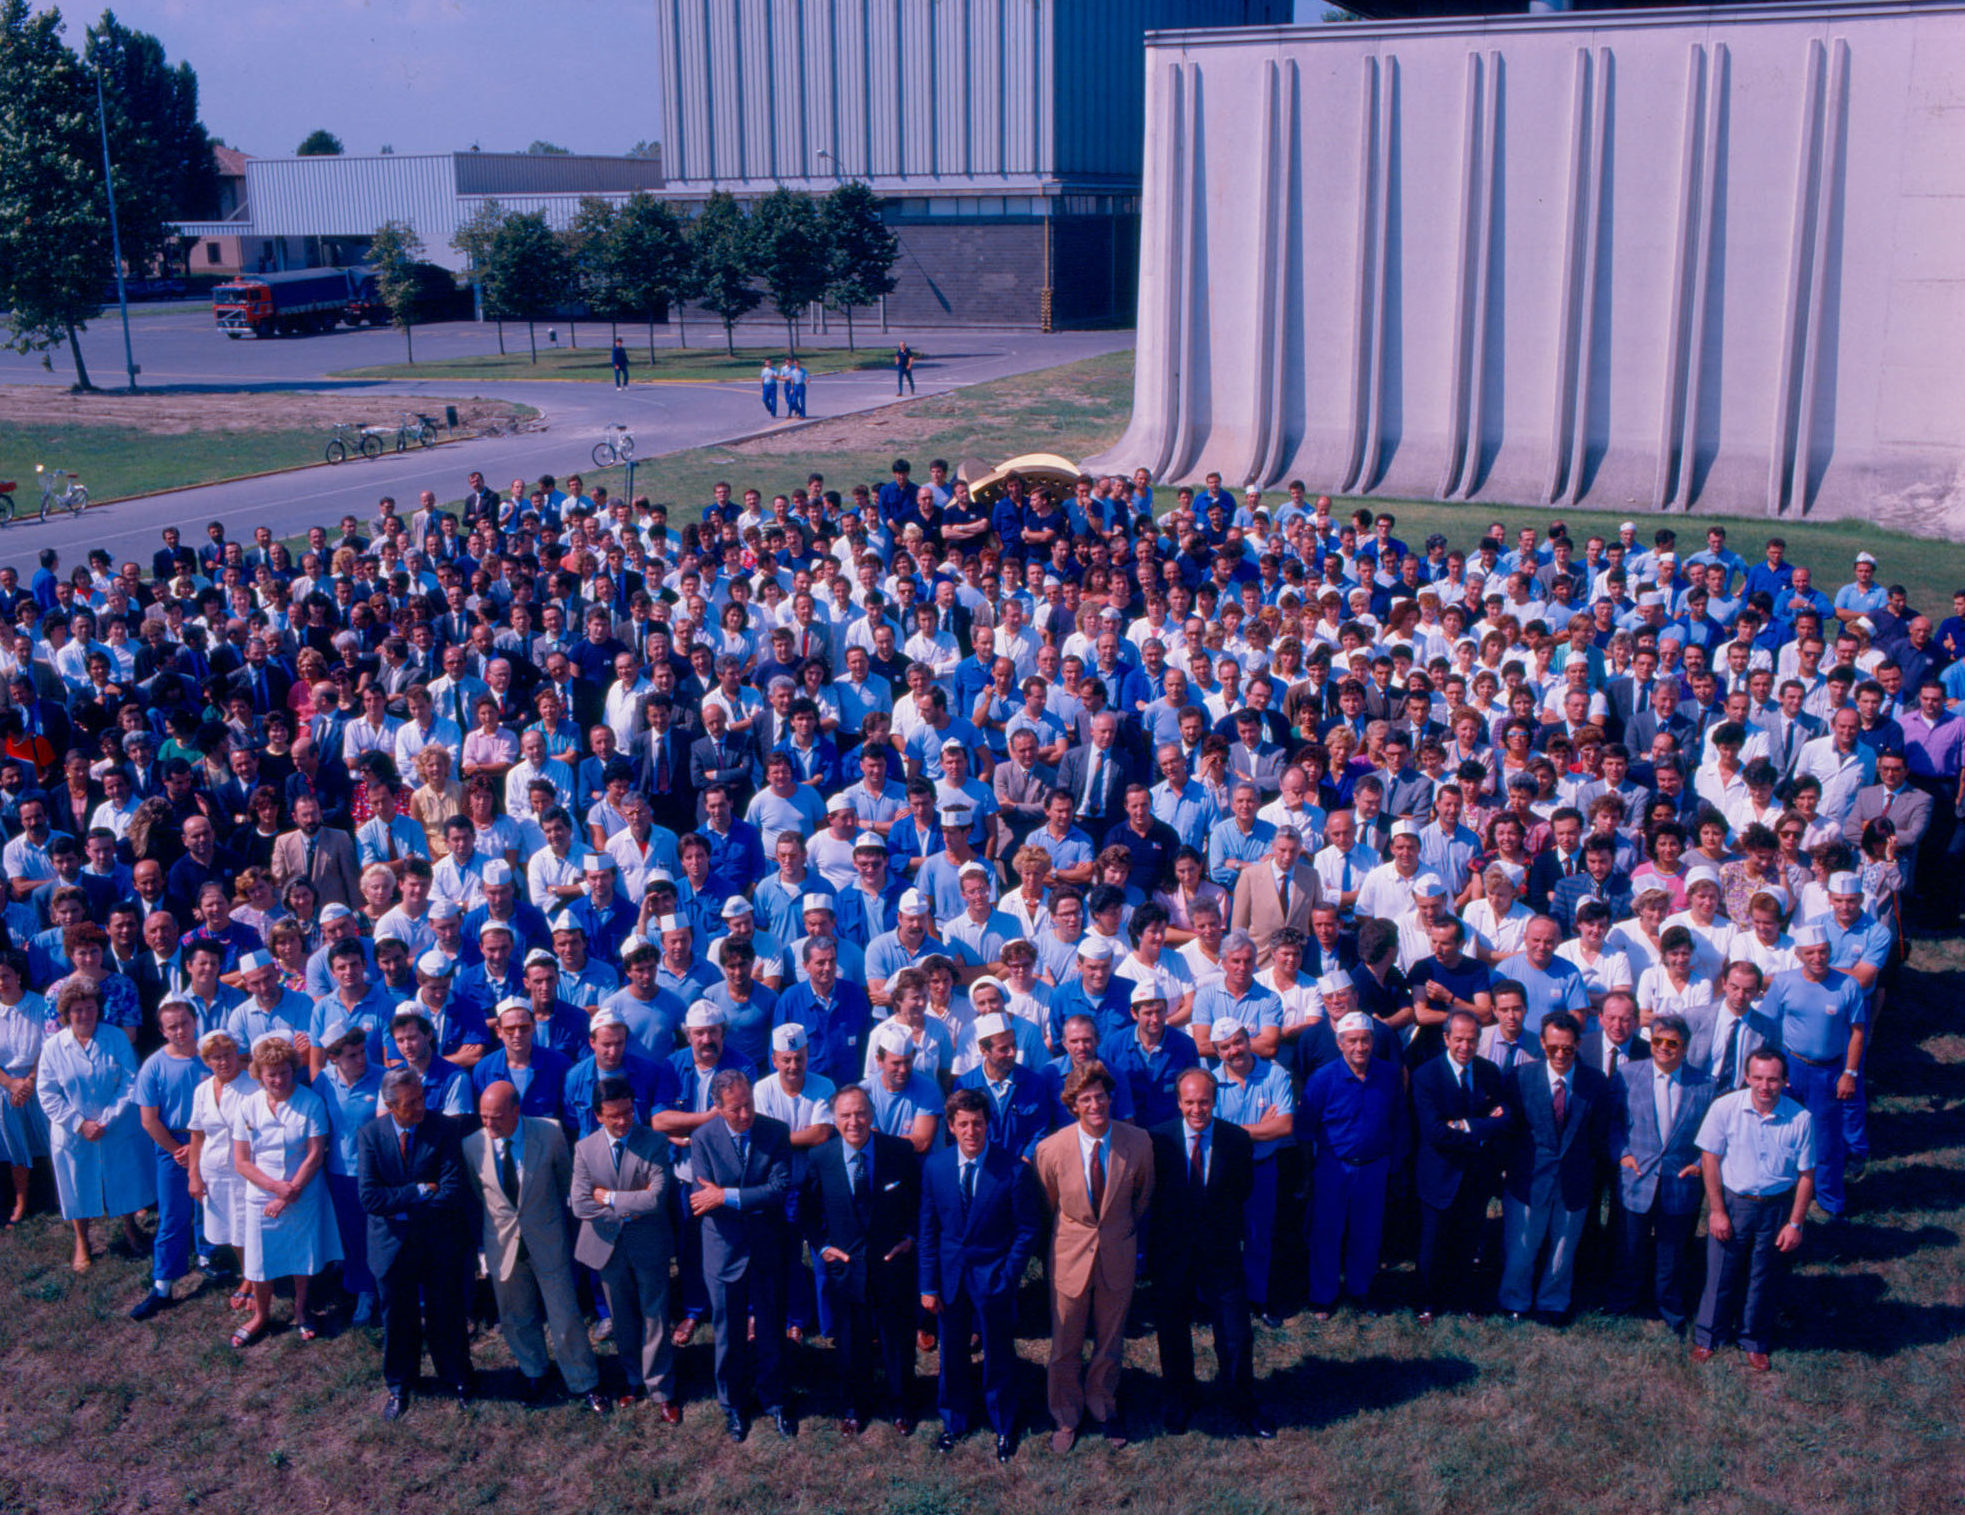 1990 - Pietro Barilla with Pedrigano Plant Employees in 1990